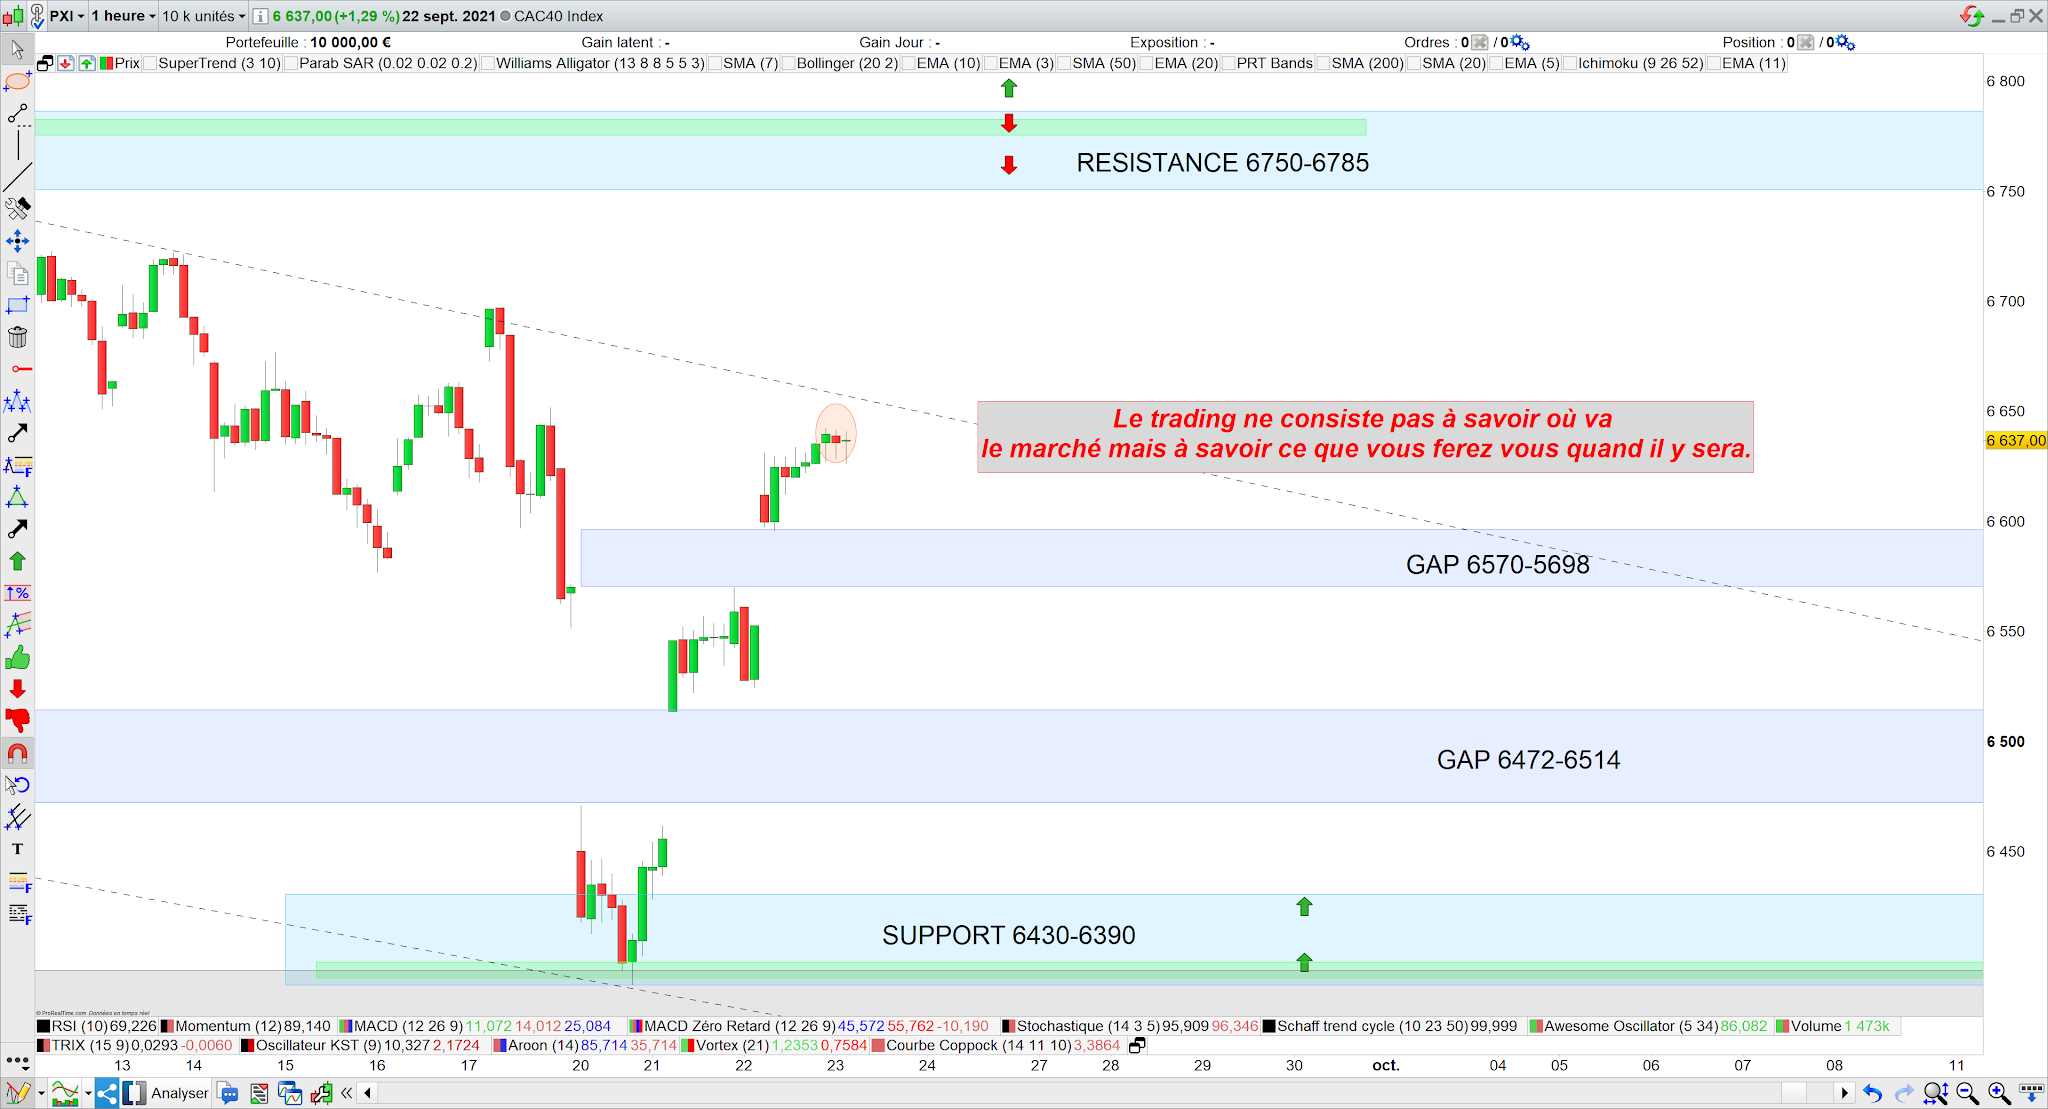 Trading cac40 23/09/21